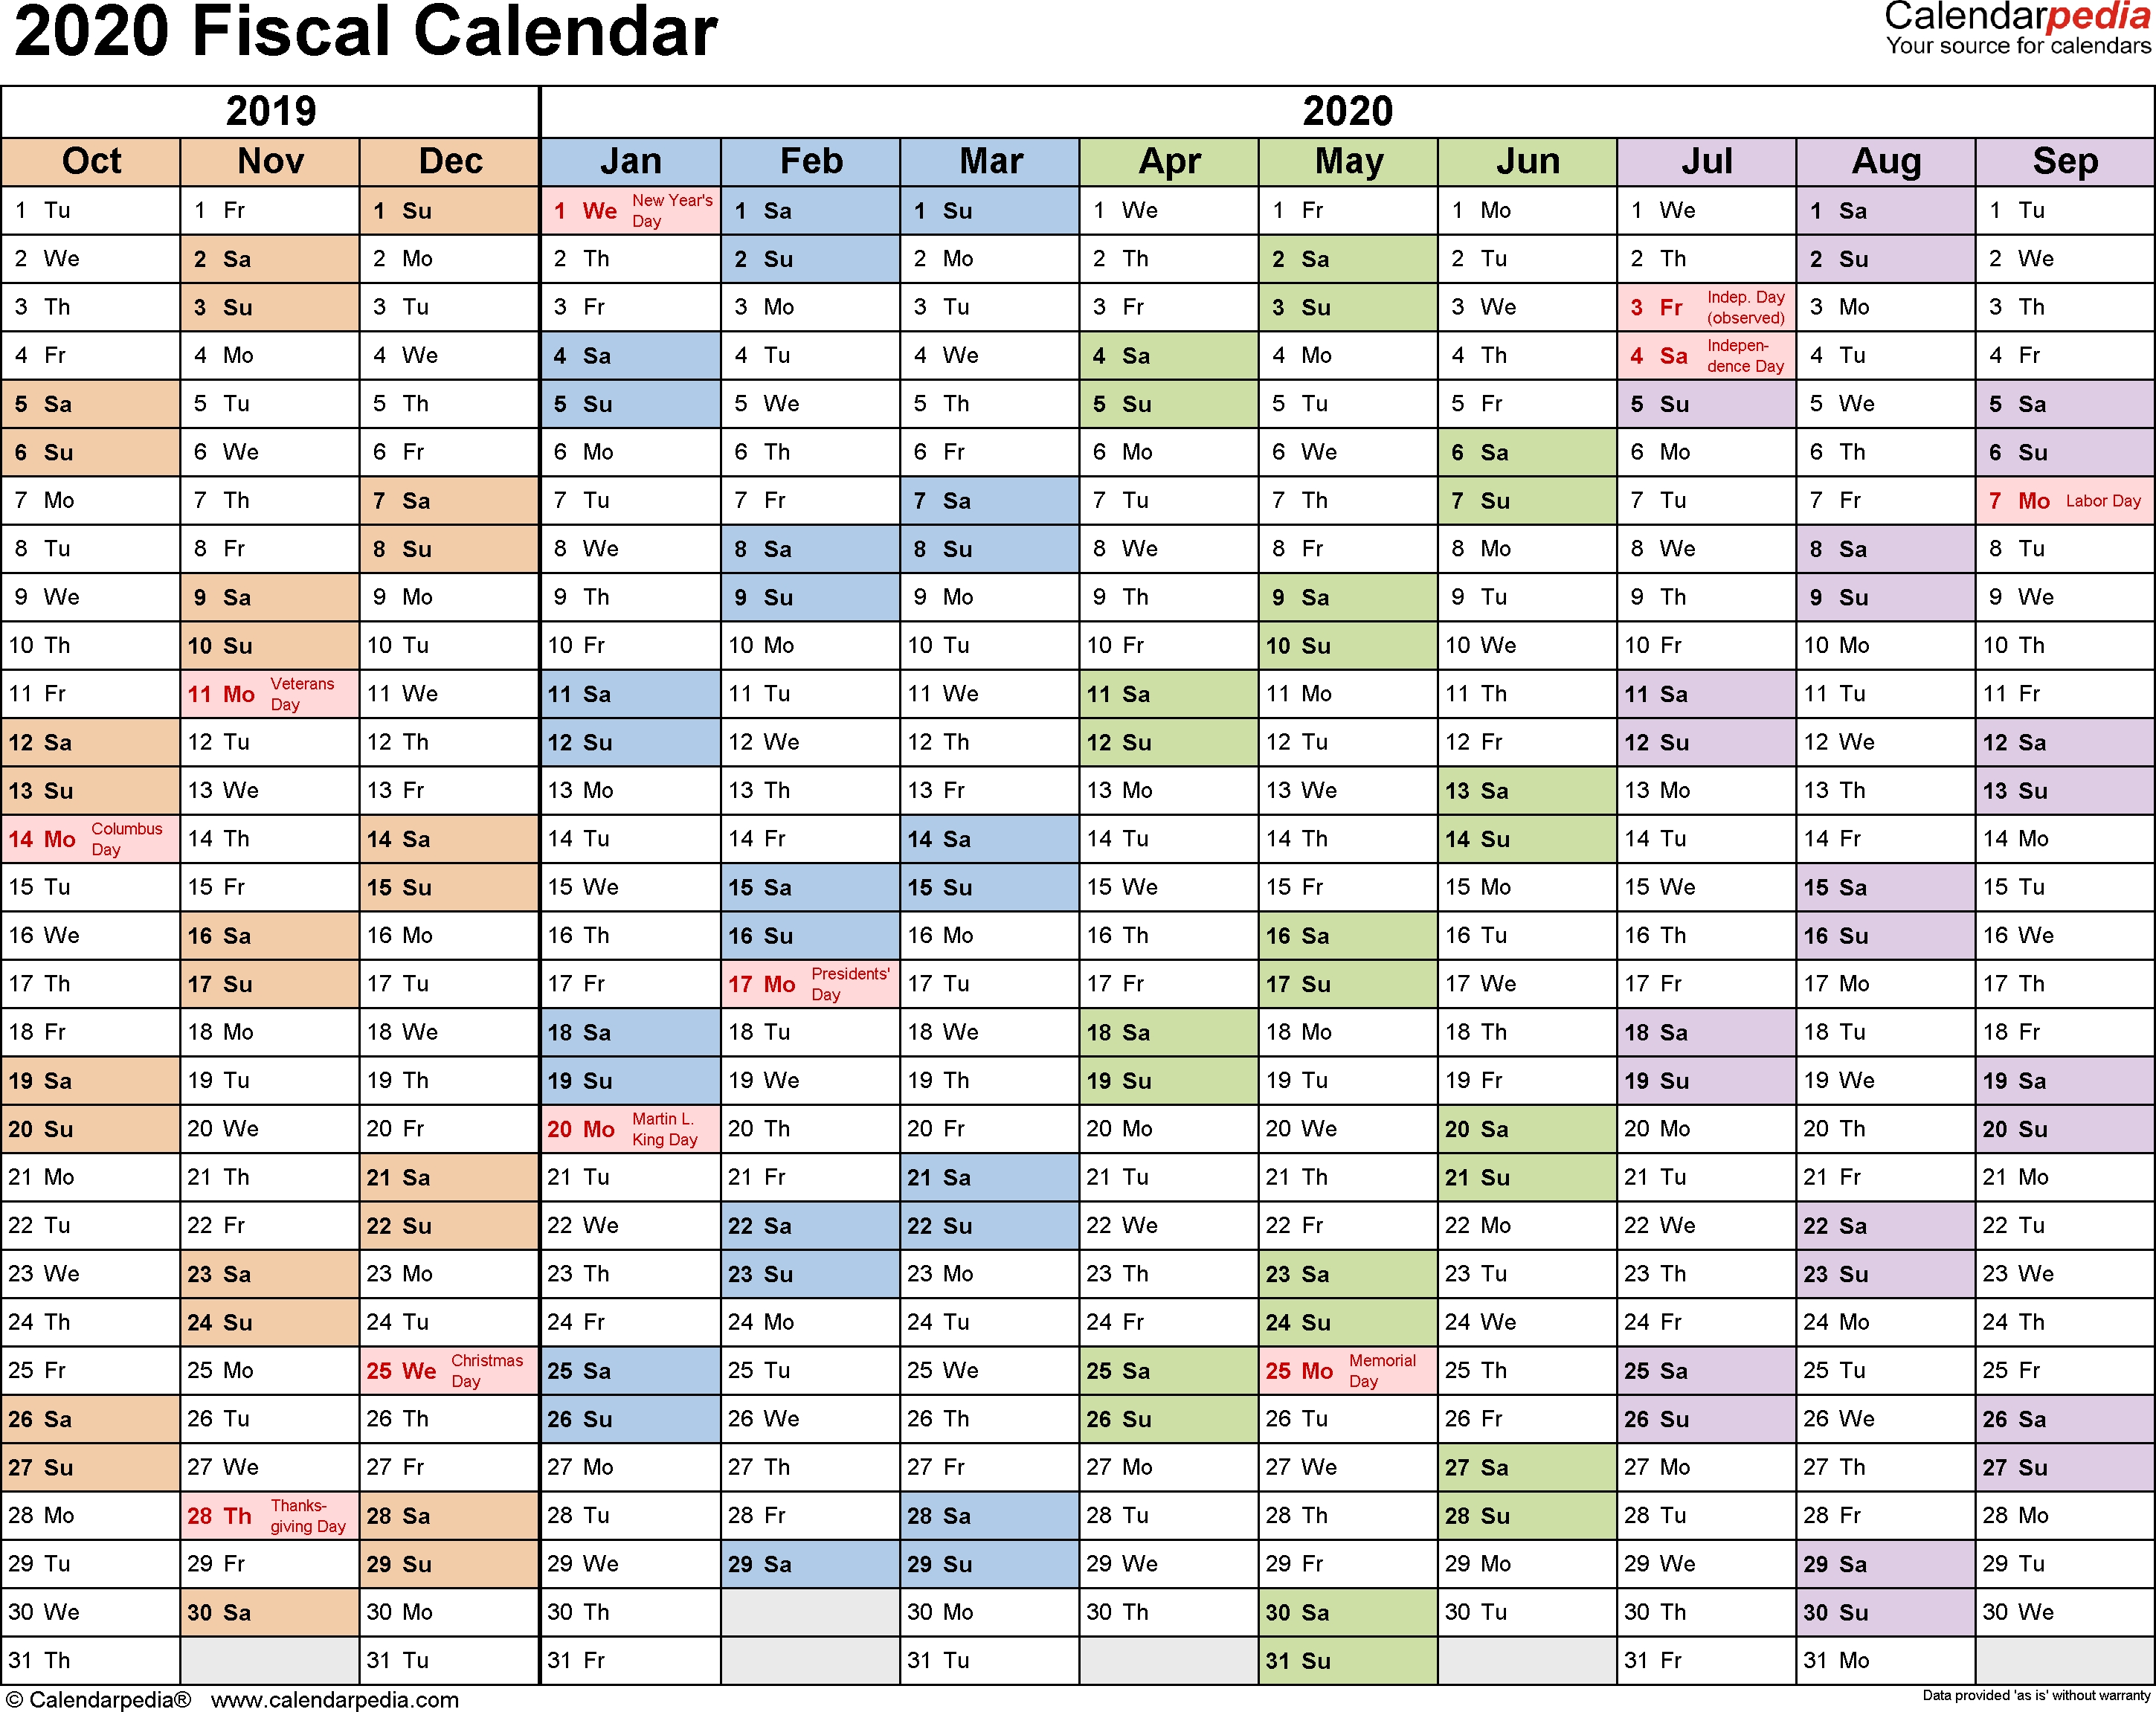 Fiscal Calendars 2020 - Free Printable Word Templates in What Is 4-4-5 2020 Calendar